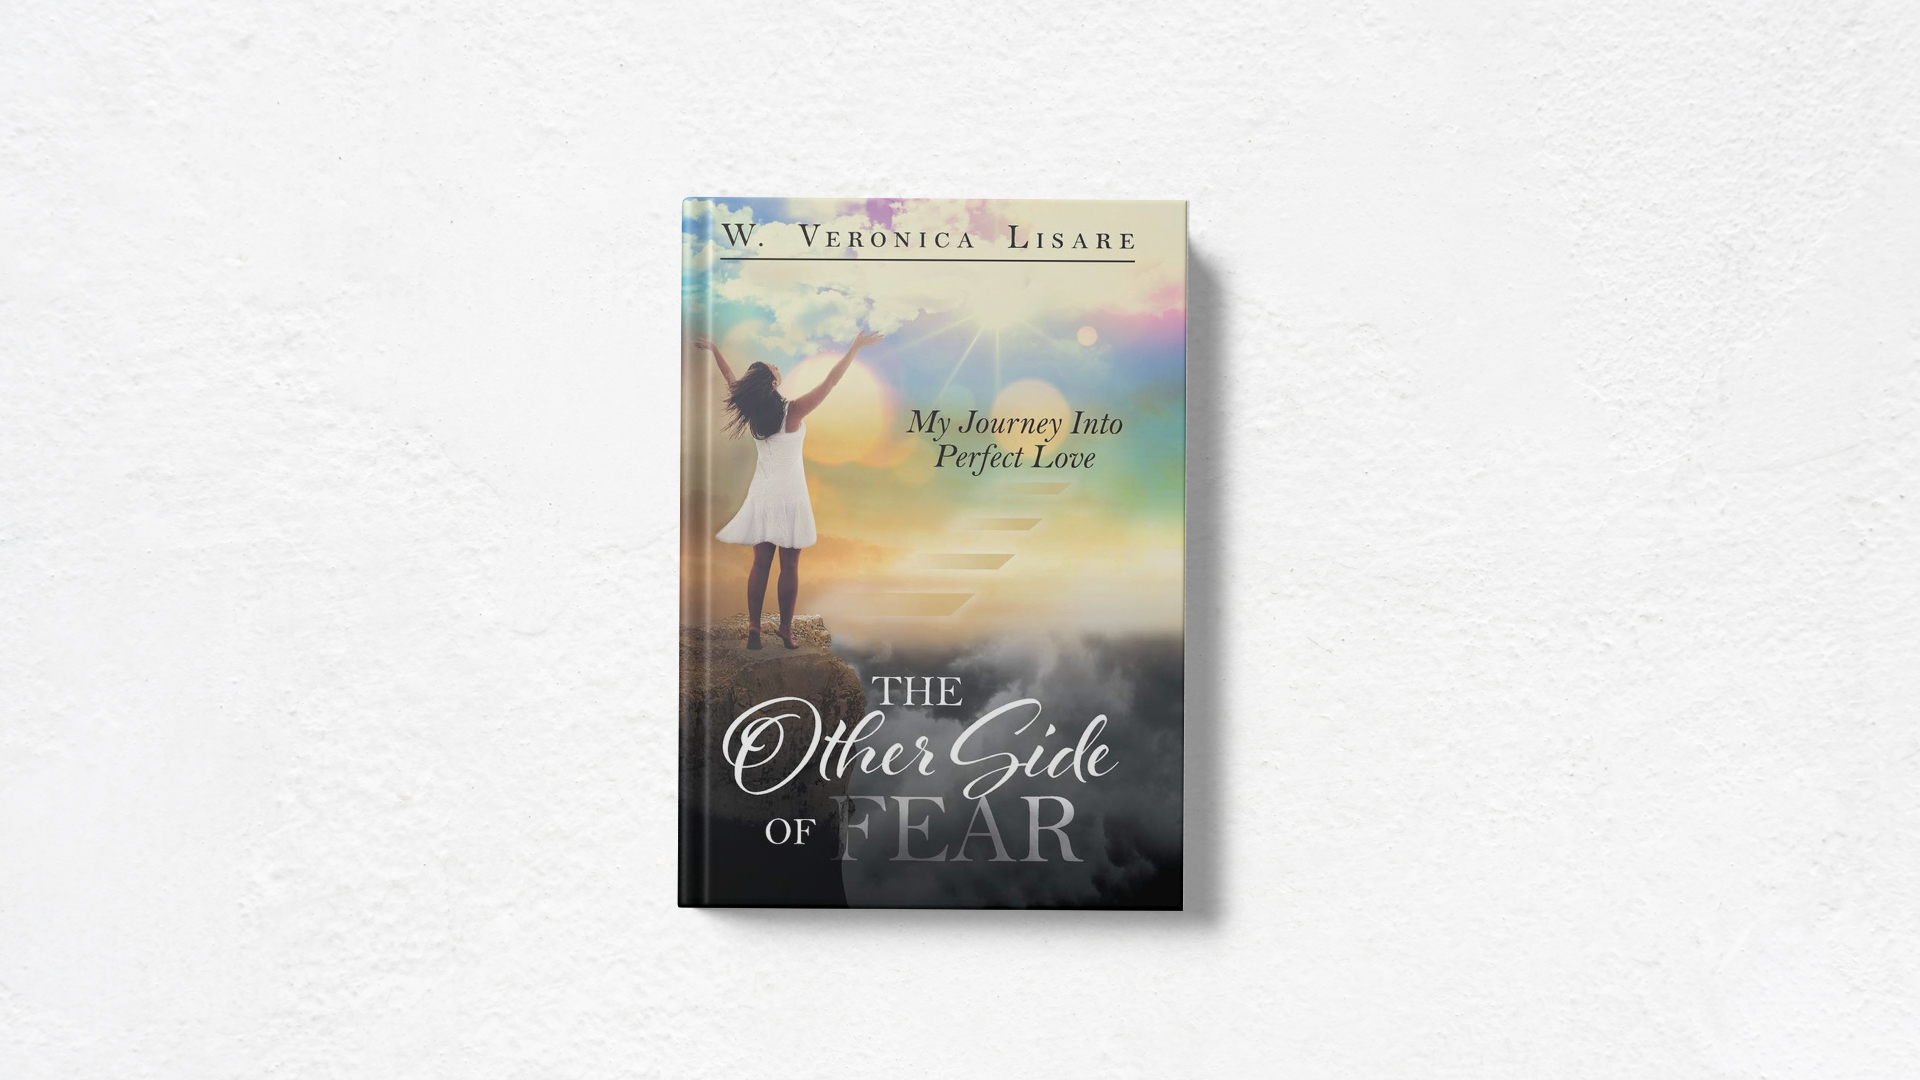 The Other Side of Fear by W Veronica Lisare cover with white background